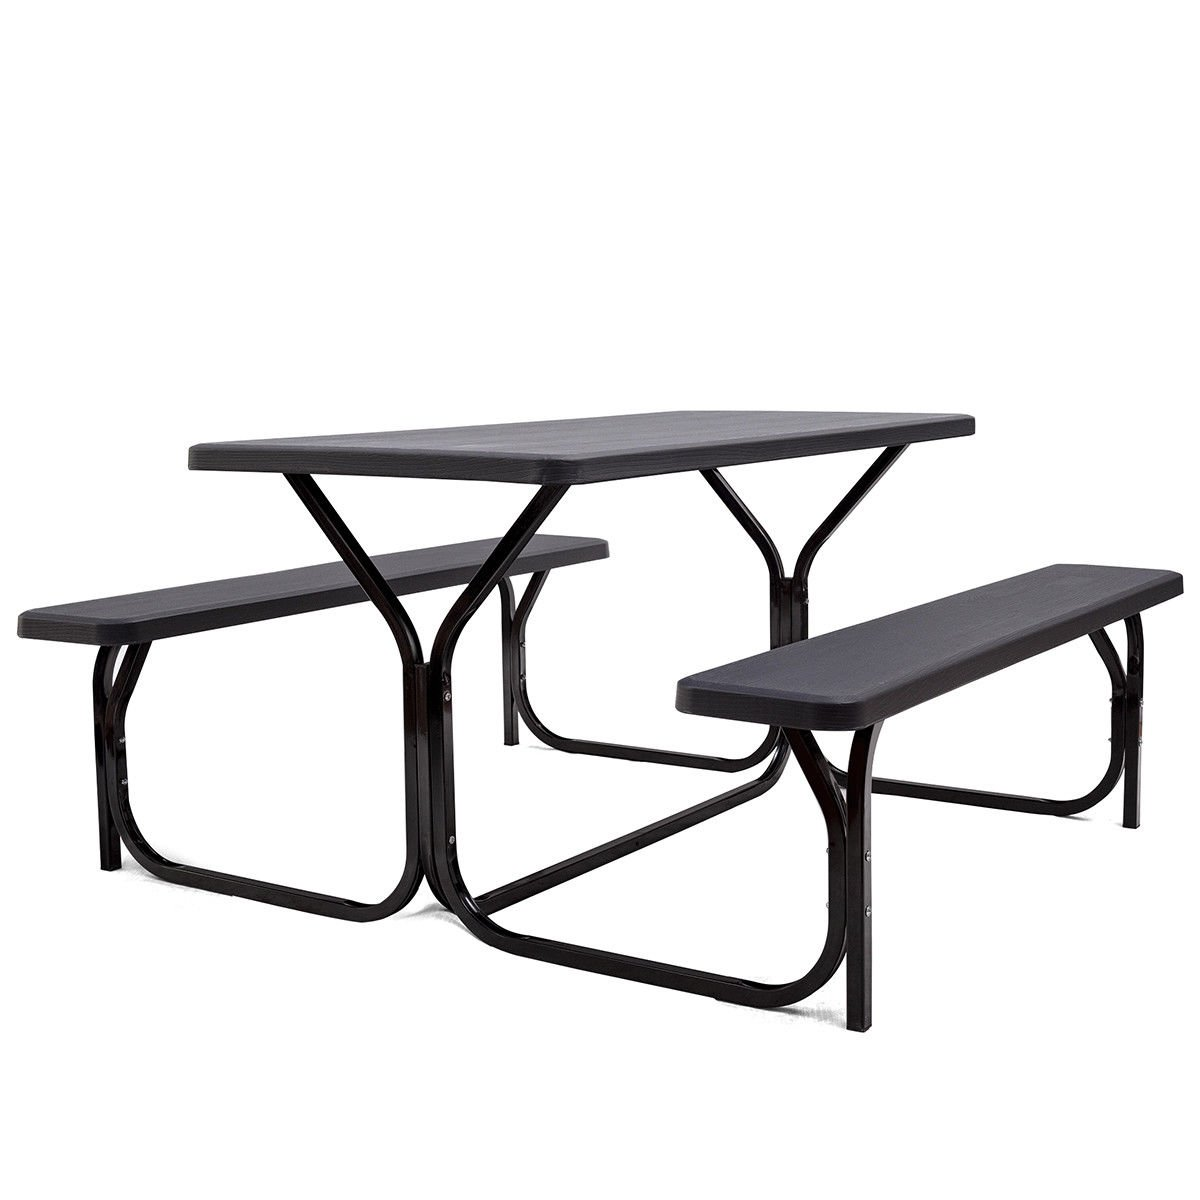 KCHEX>>>Picnic Table Bench Set Outdoor Backyard Patio Garden Party Dining All Weather>This table top and benches are made of high-density polyethylene, eco-friendly, durable and tough, perfect for out by COLIBROX